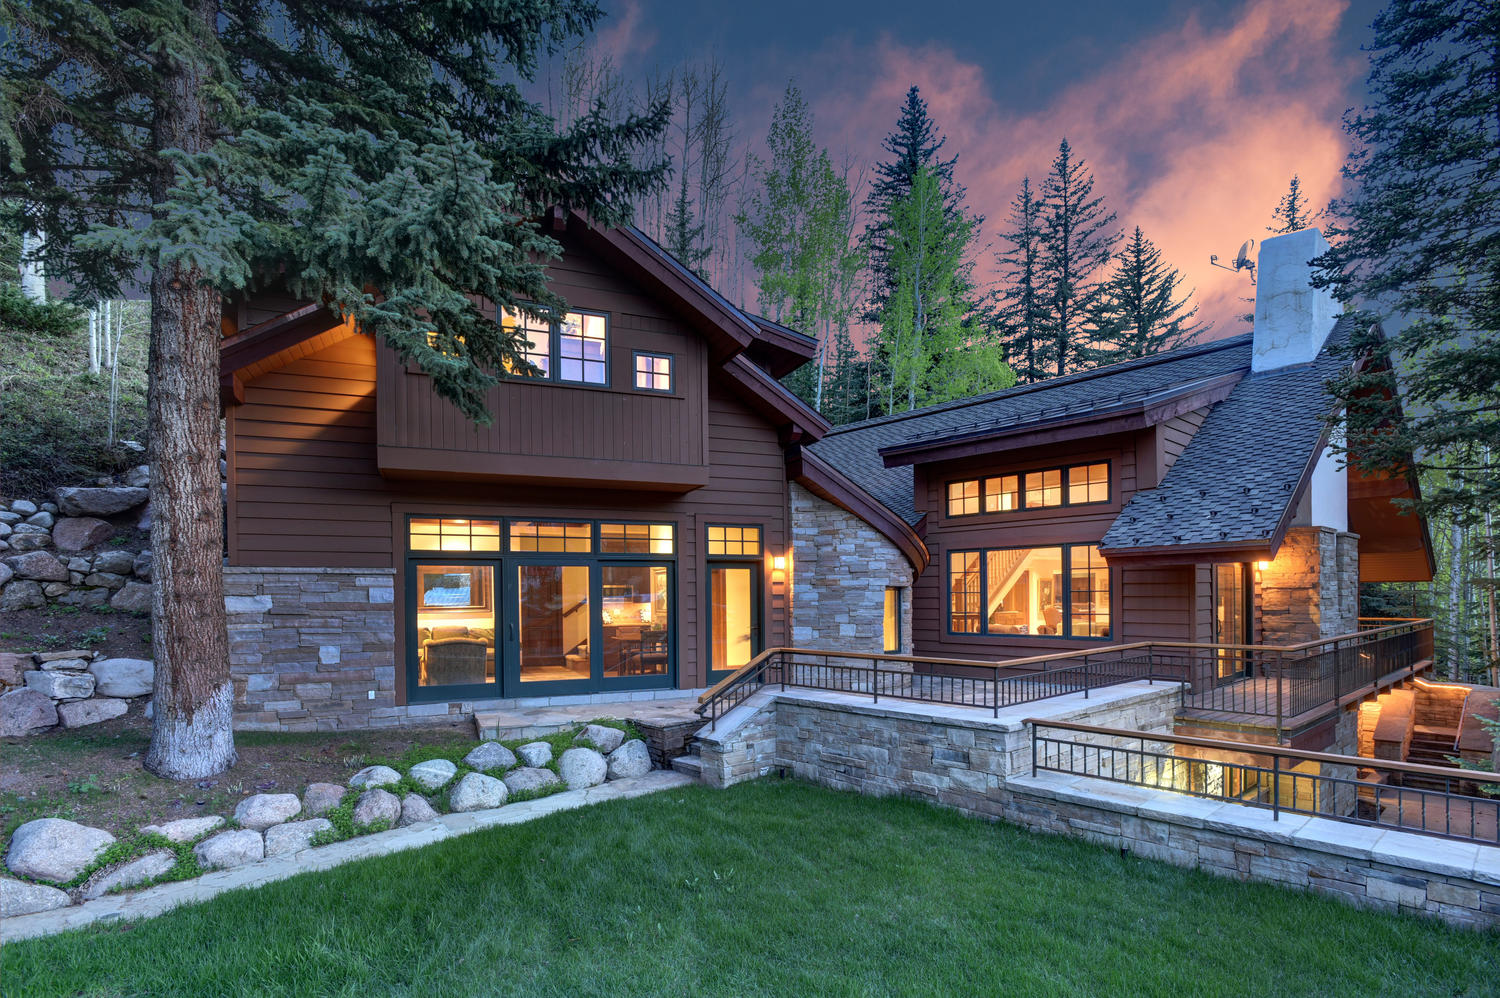 Casa Unifamiliar por un Venta en 670 Forest Road Vail Village, Vail, Colorado, 81657 Estados Unidos